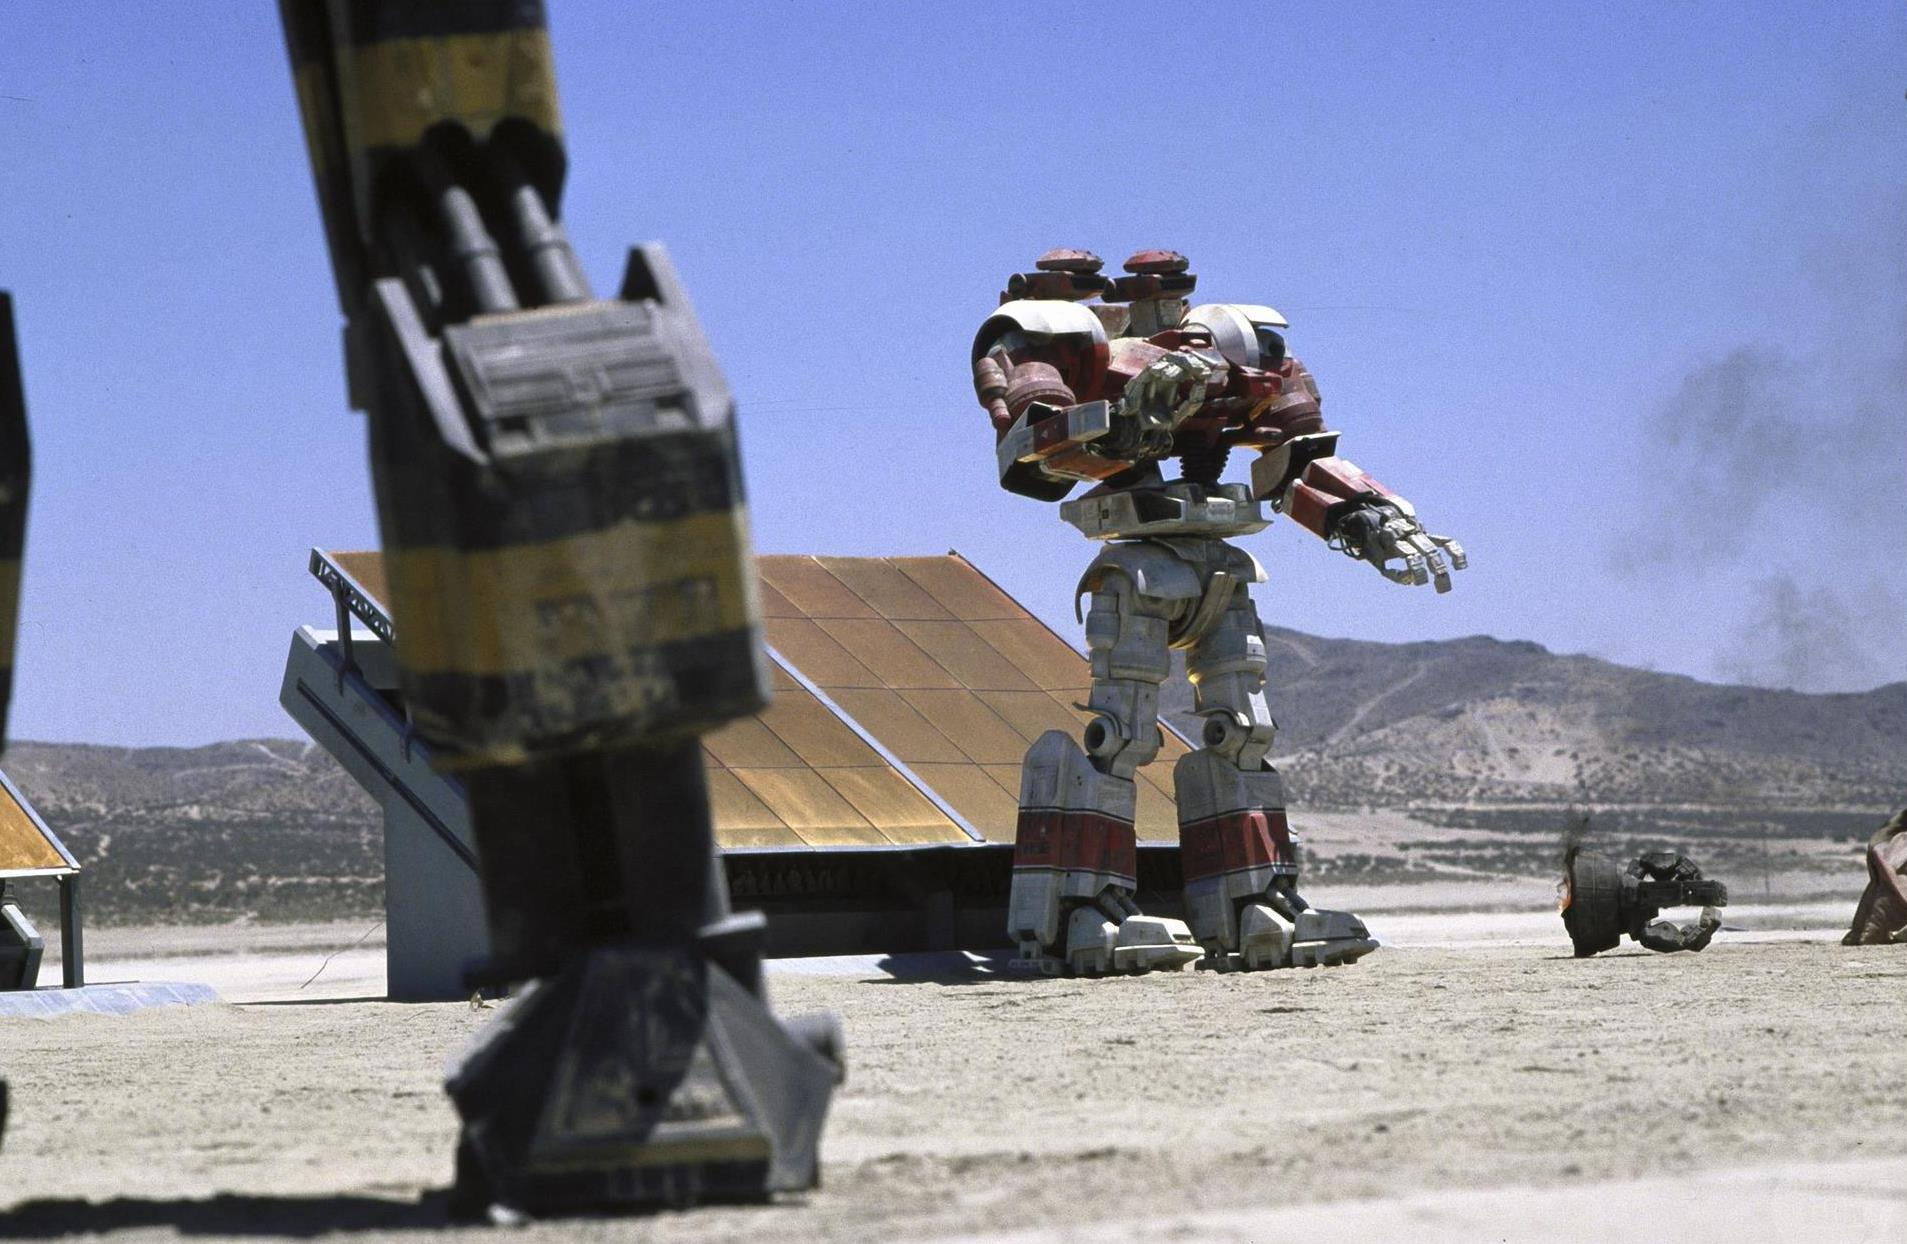 Transformer robots battle in Robot Jox (1990)